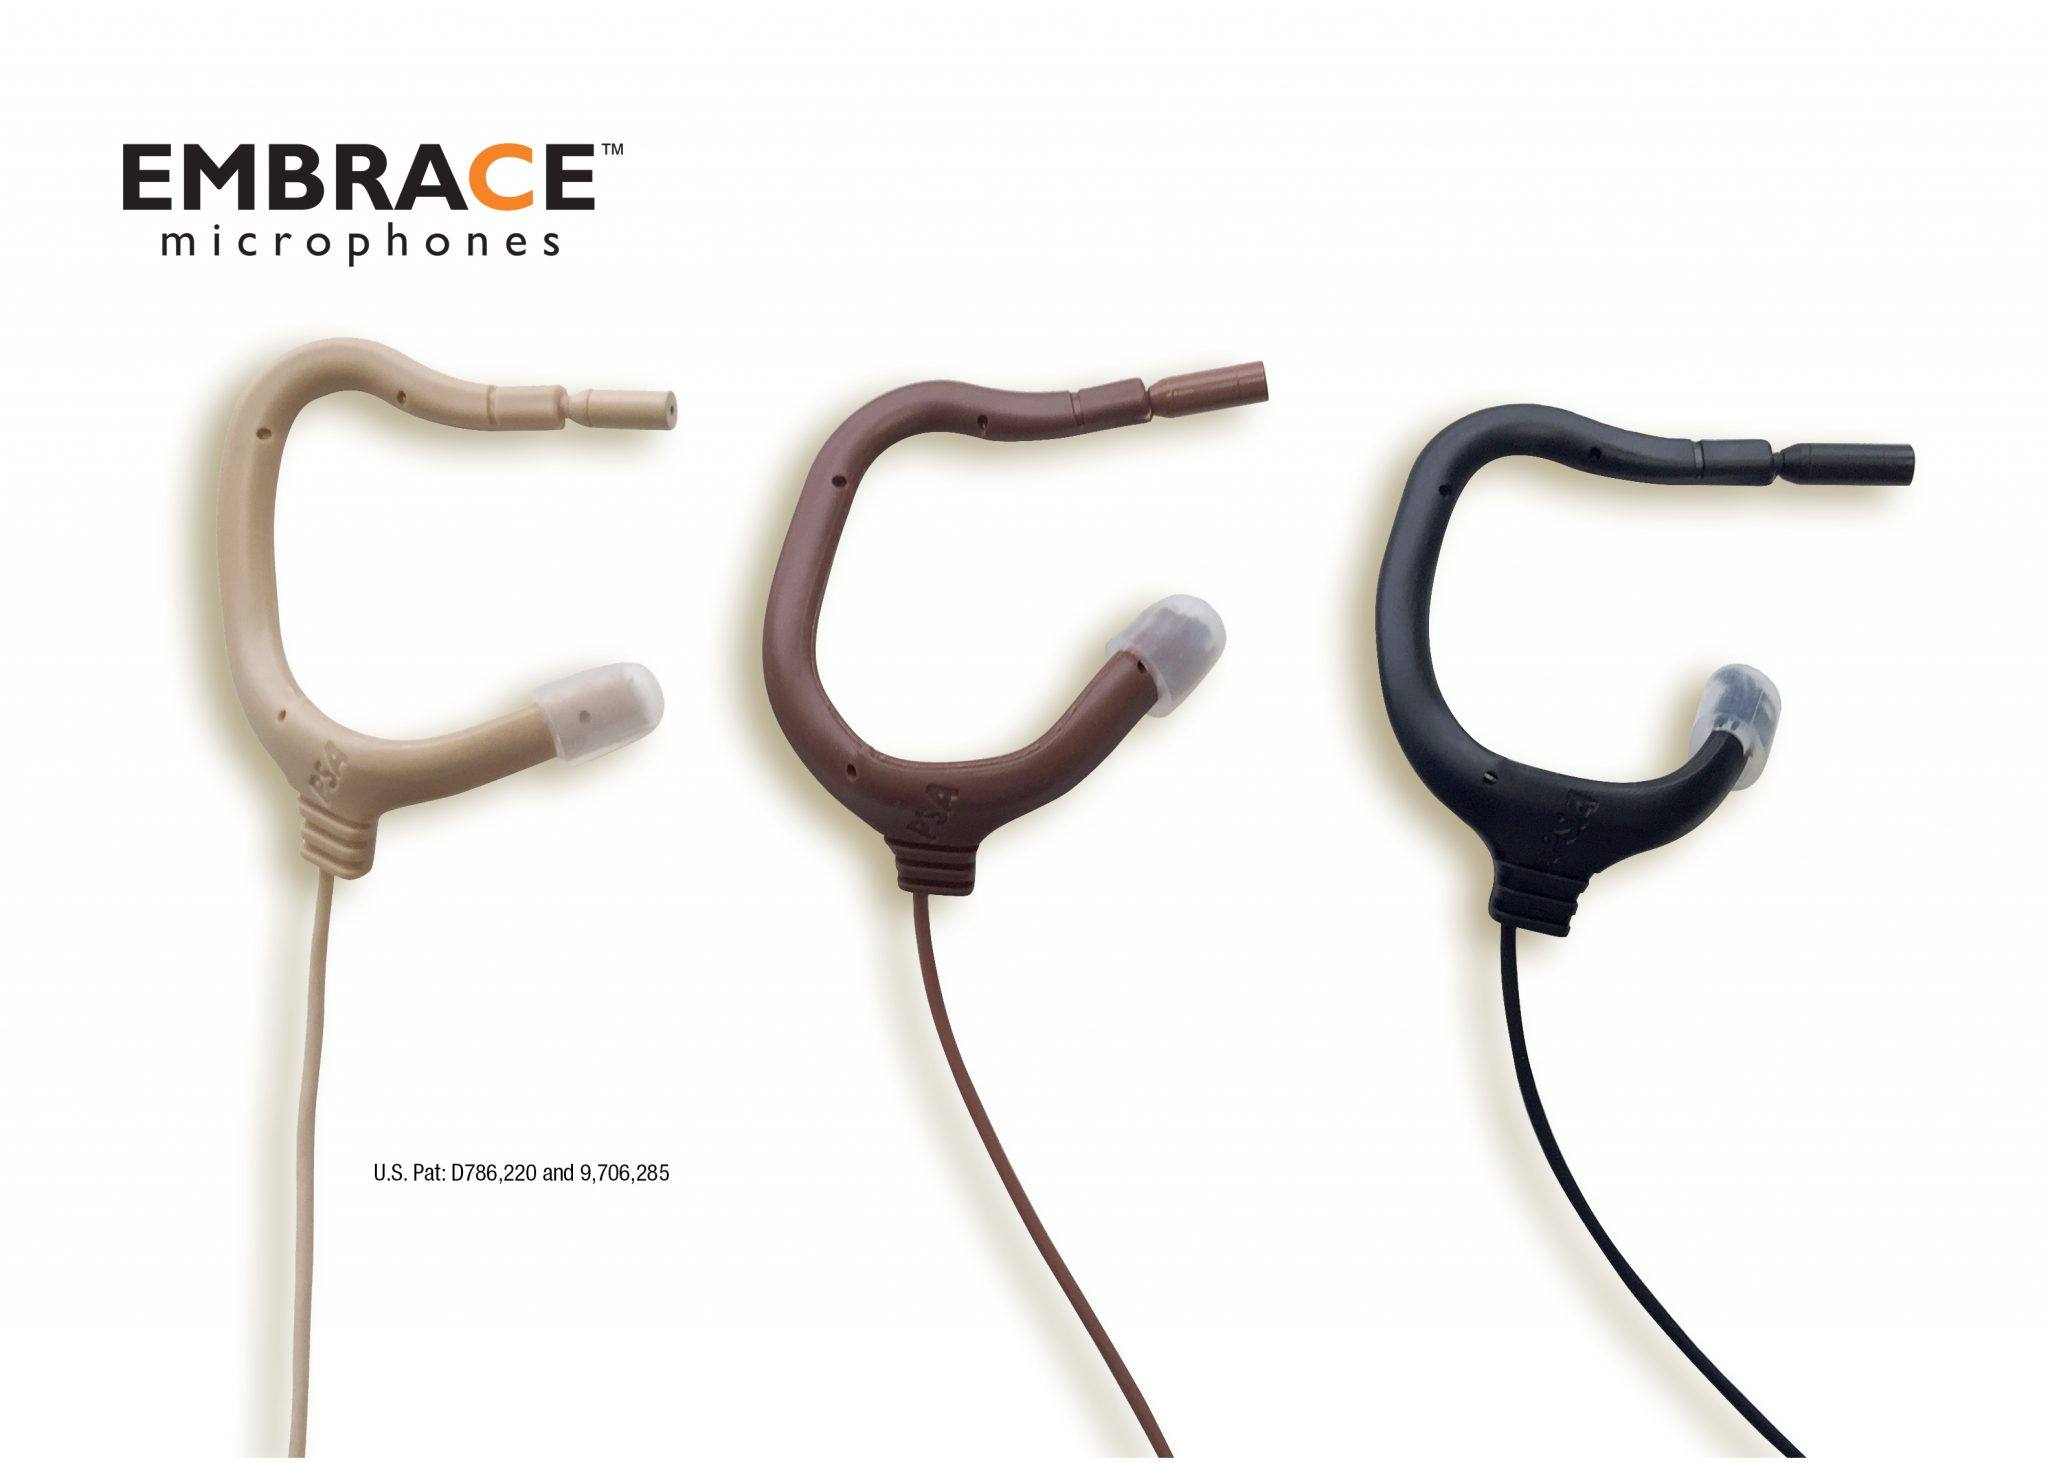 Patented EMBRACE Microphones shown in beige, brown and black to blend with hair and skin tone